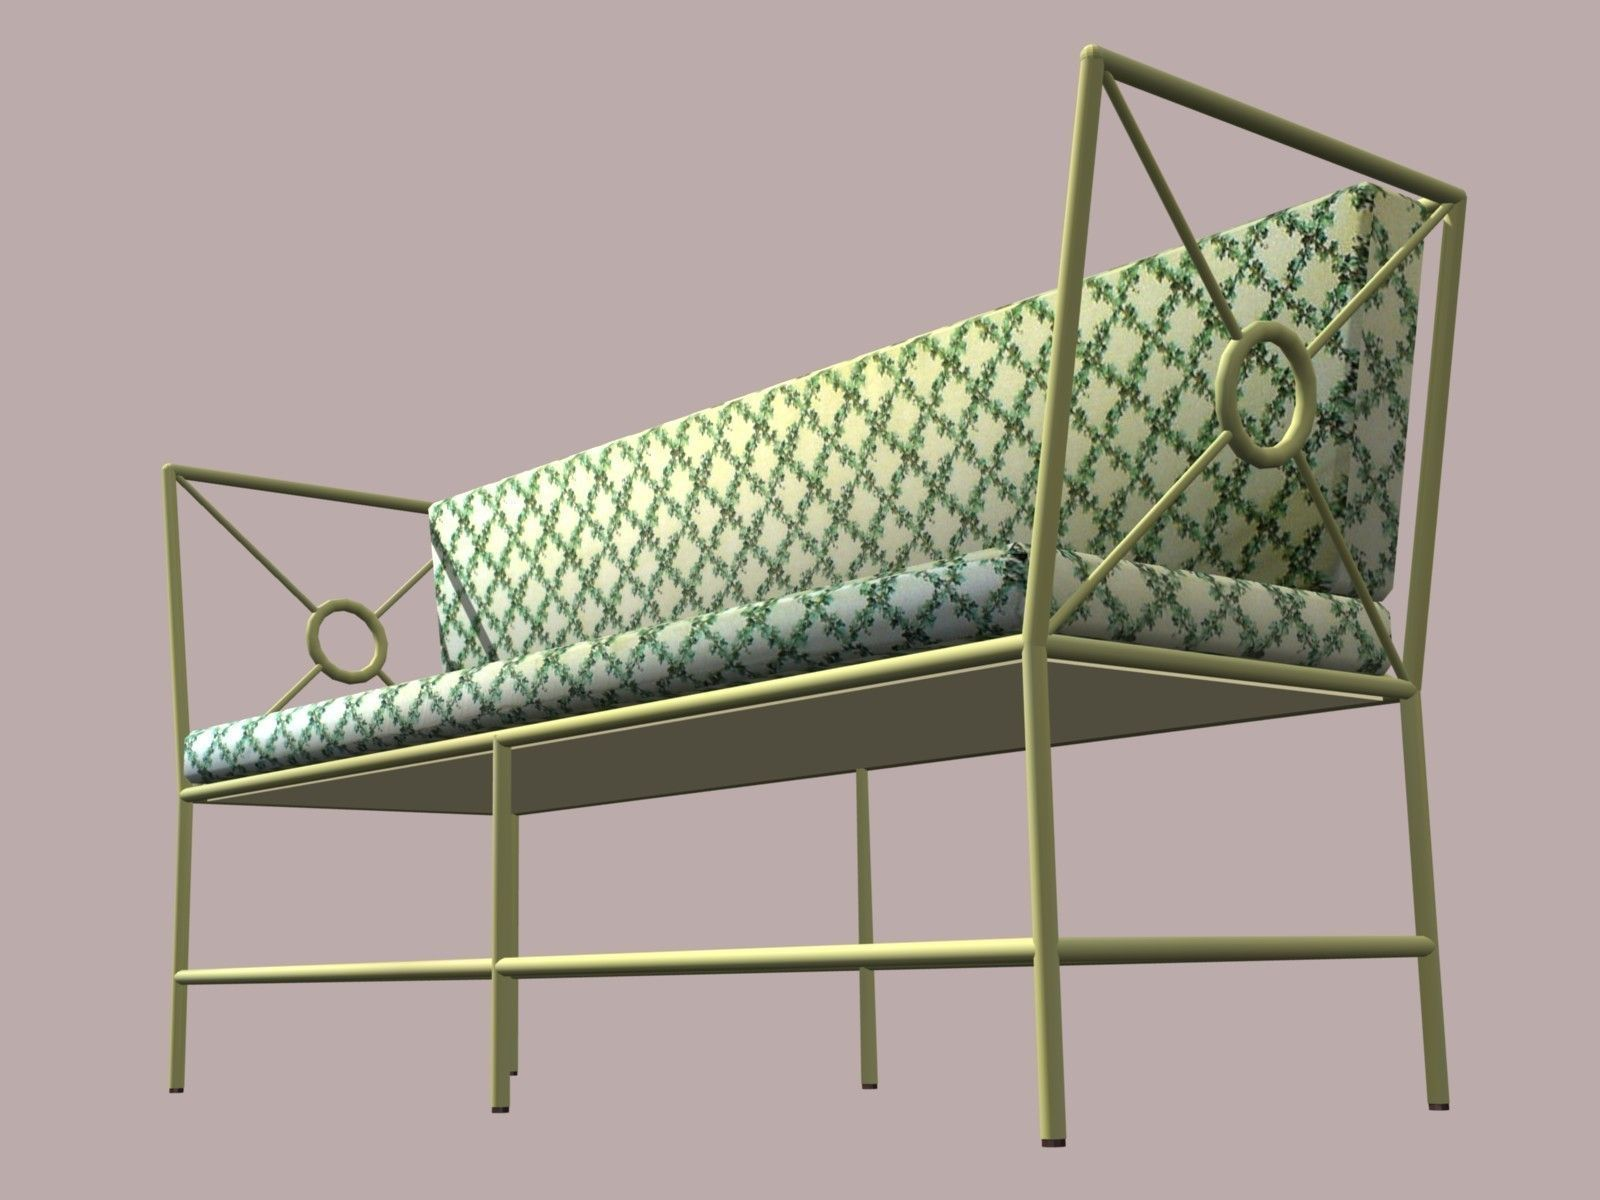 Delicieux ... Wrought Iron Sofa 3d Model Low Poly Max Obj Blend Wrl Wrz Mtl ...